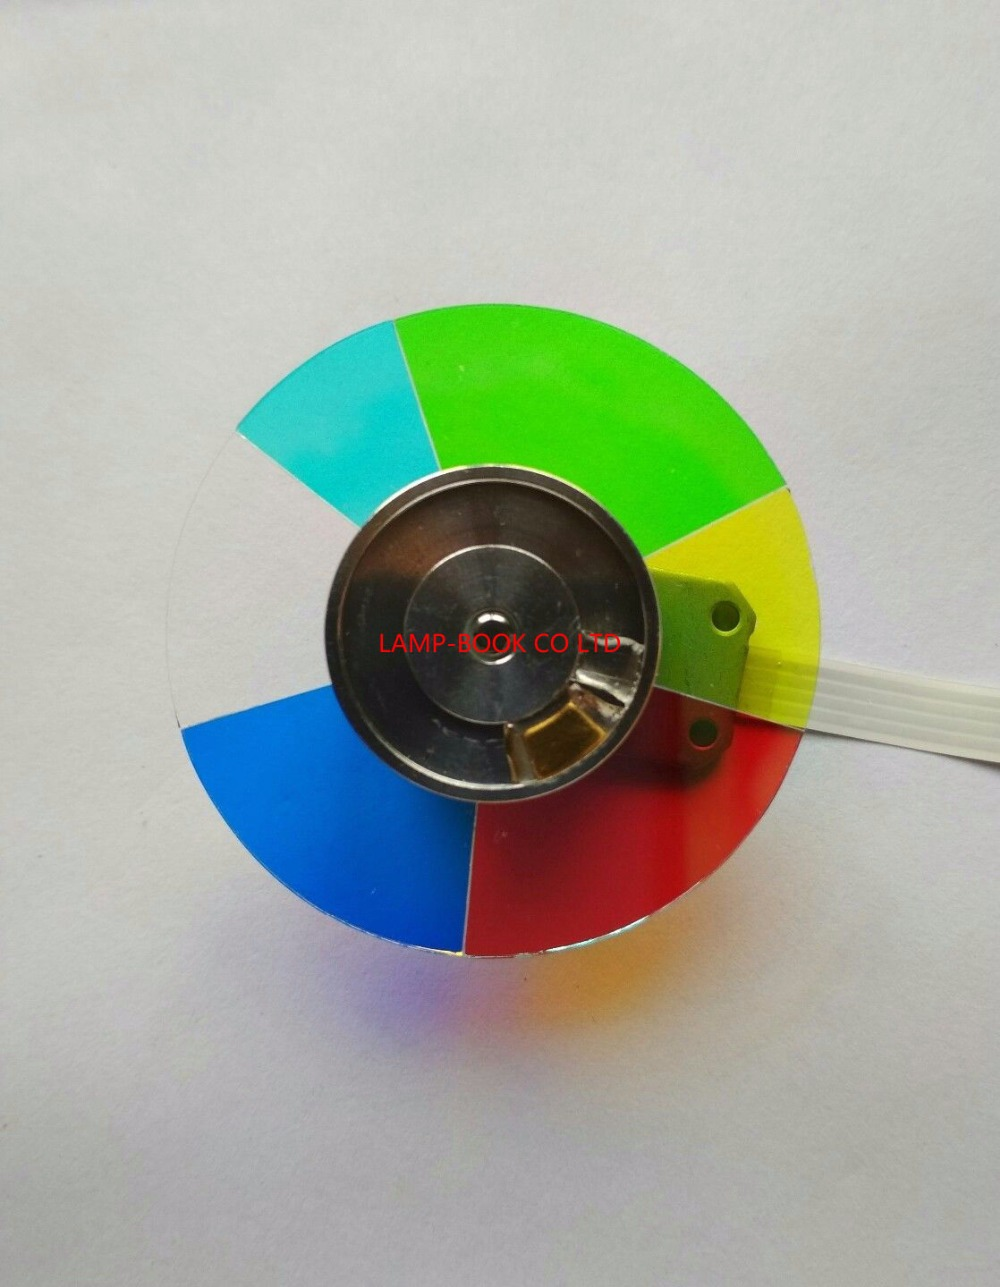 ORIGINAL FACTORY COLOR WHEEL FOR OPTOMA OPW4125 EH341 X416 OPH4106 OPW4055 OP316ST OPW416ST X316ST W316ST EH490